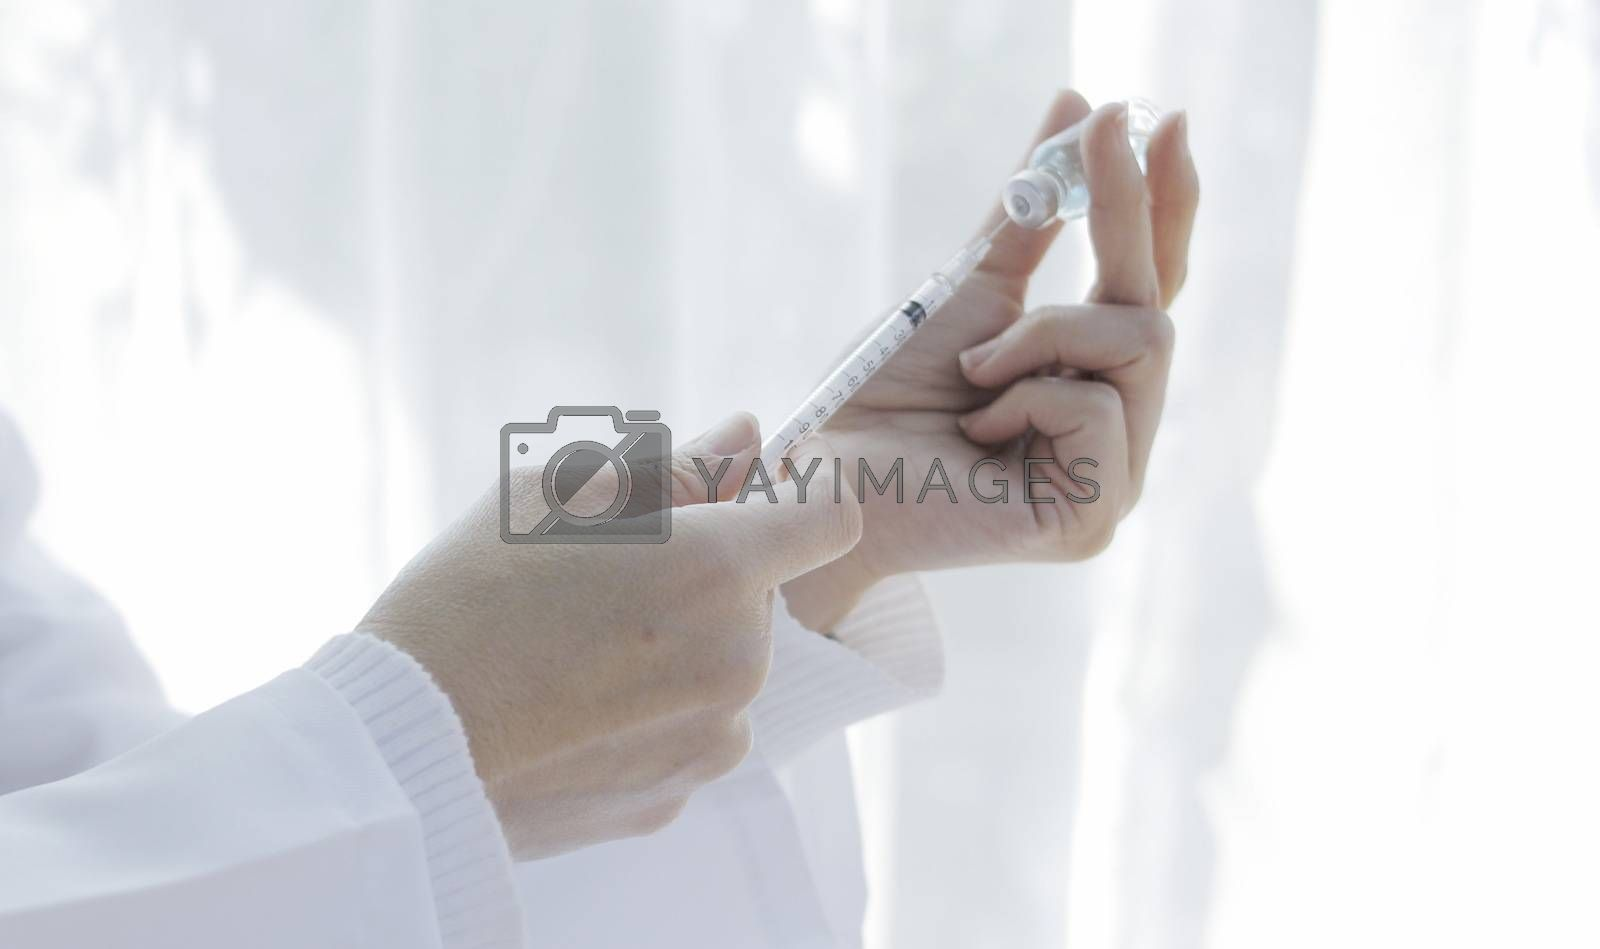 The doctor's hand has a vaccine bottle. Covid 19 virus concept